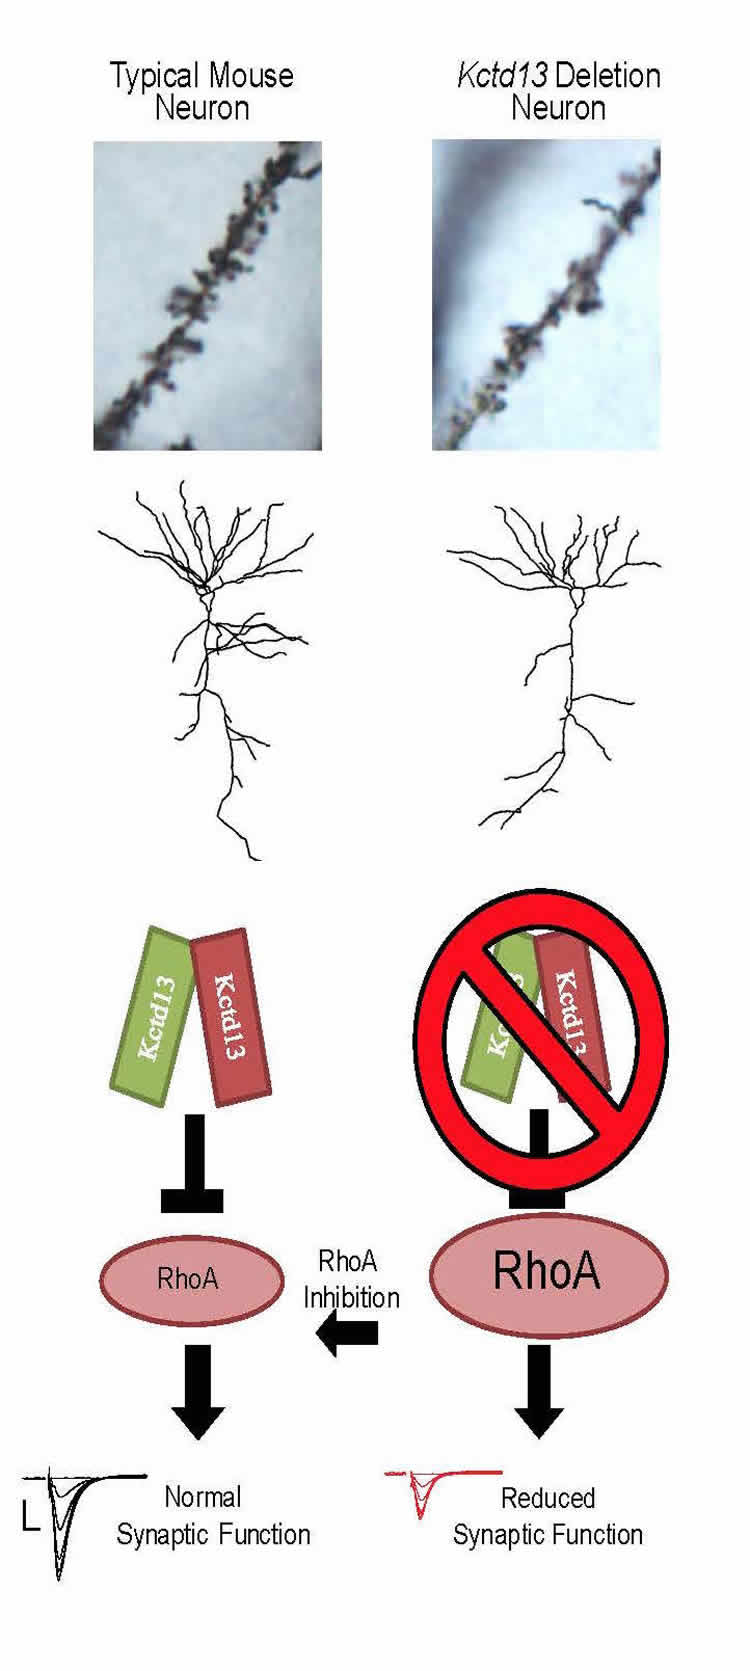 Image shows a diagram of neurons.